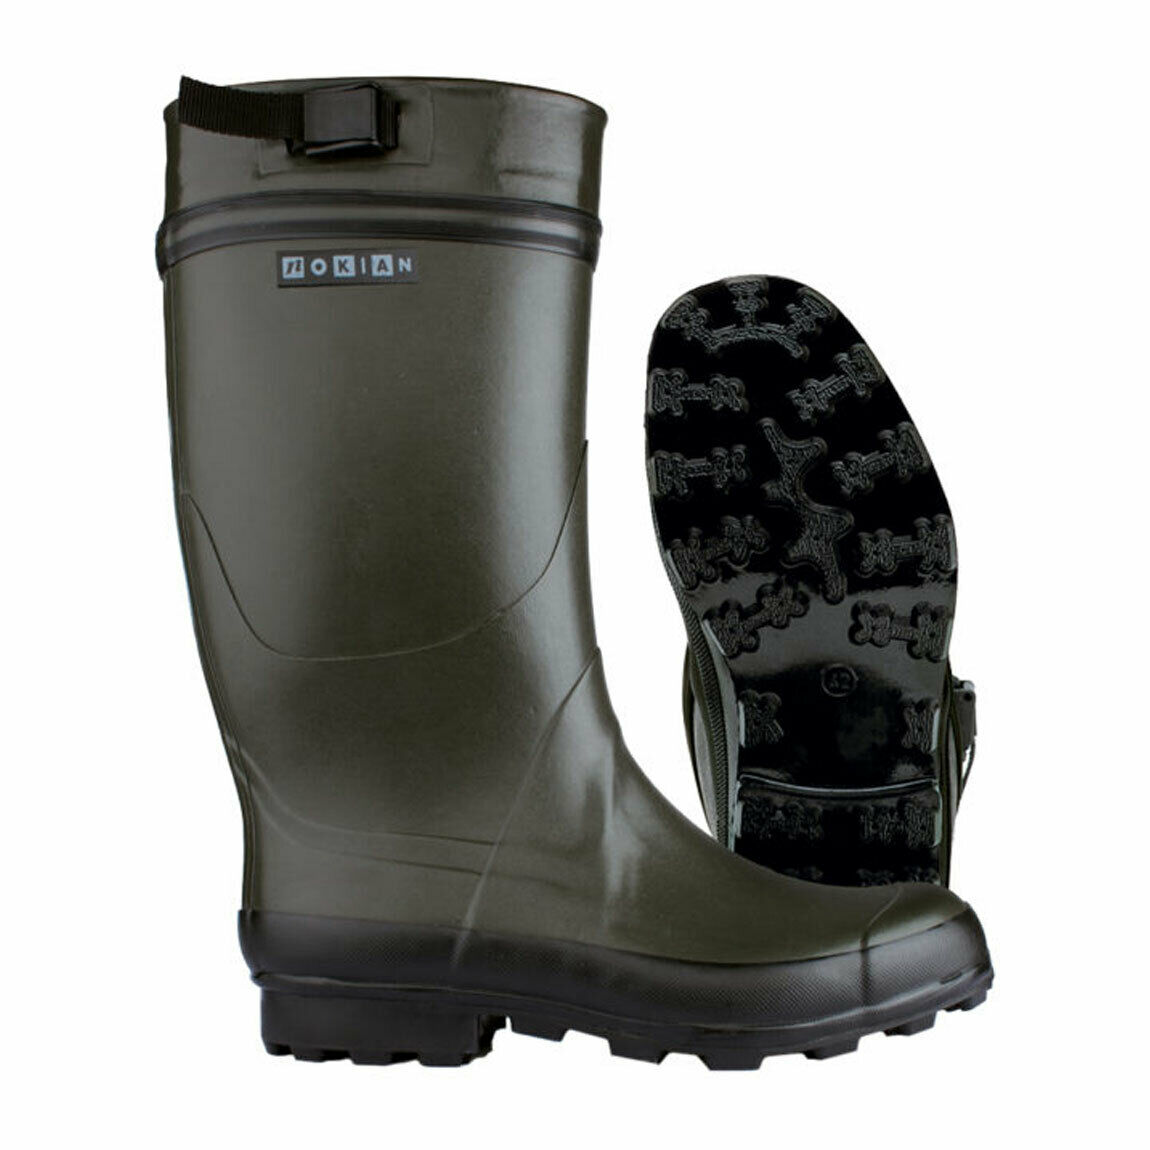 Nokian Finnwald Wellington Boots - Unisex  Wellies - Olive  general high quality